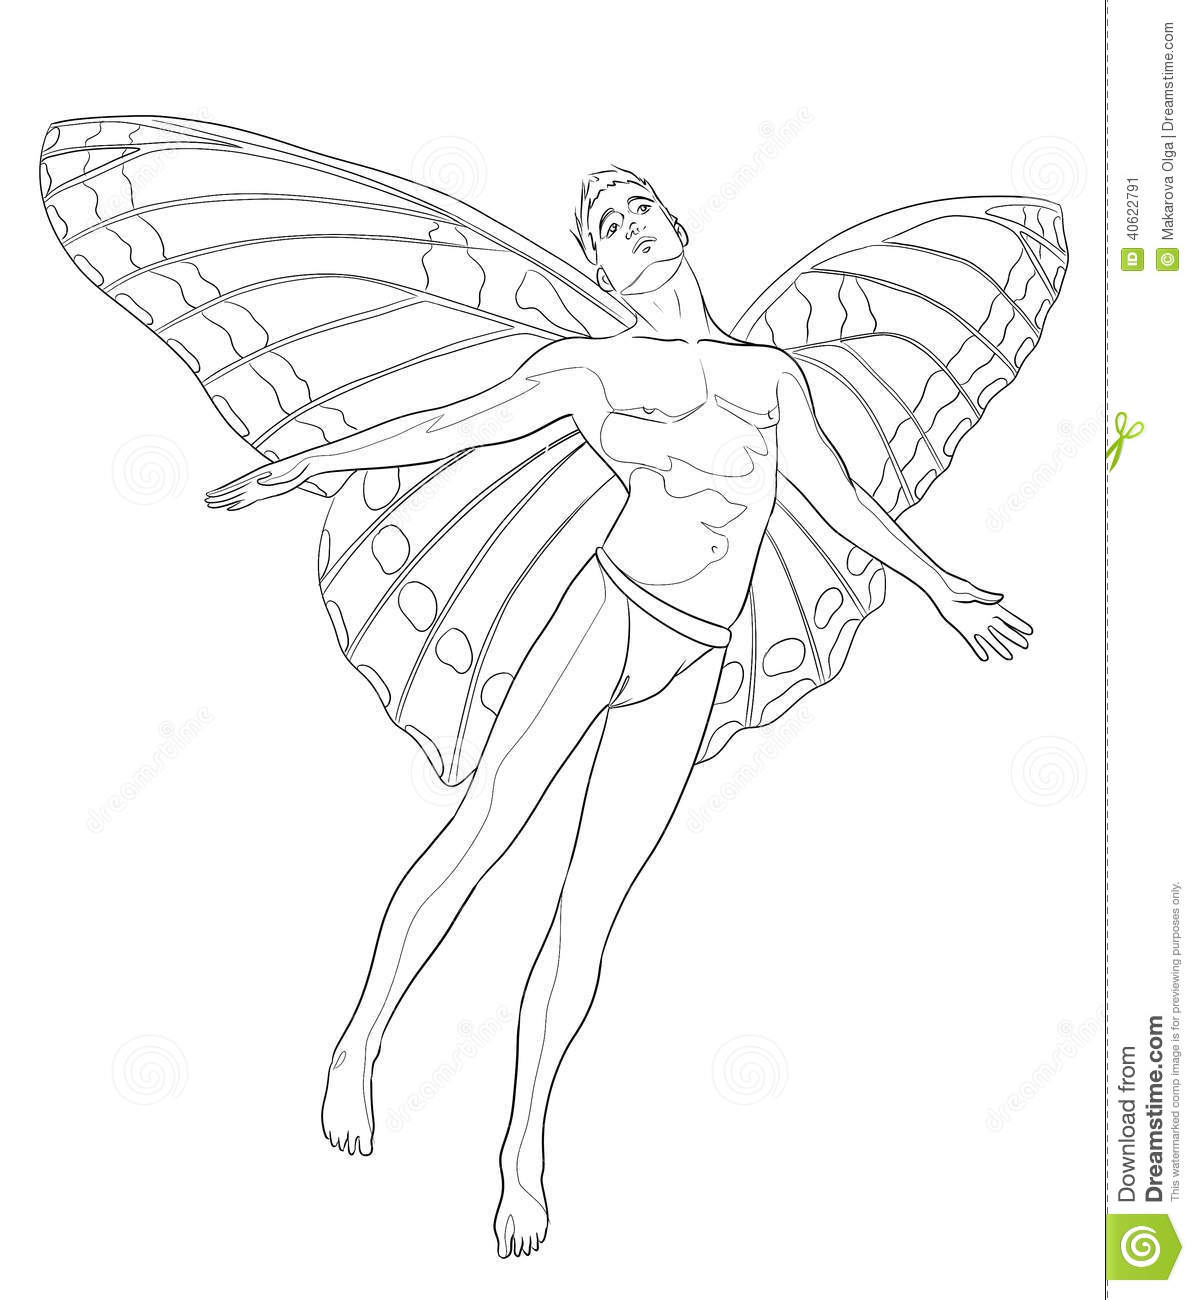 Fairy man coloring page stock illustration. Image of